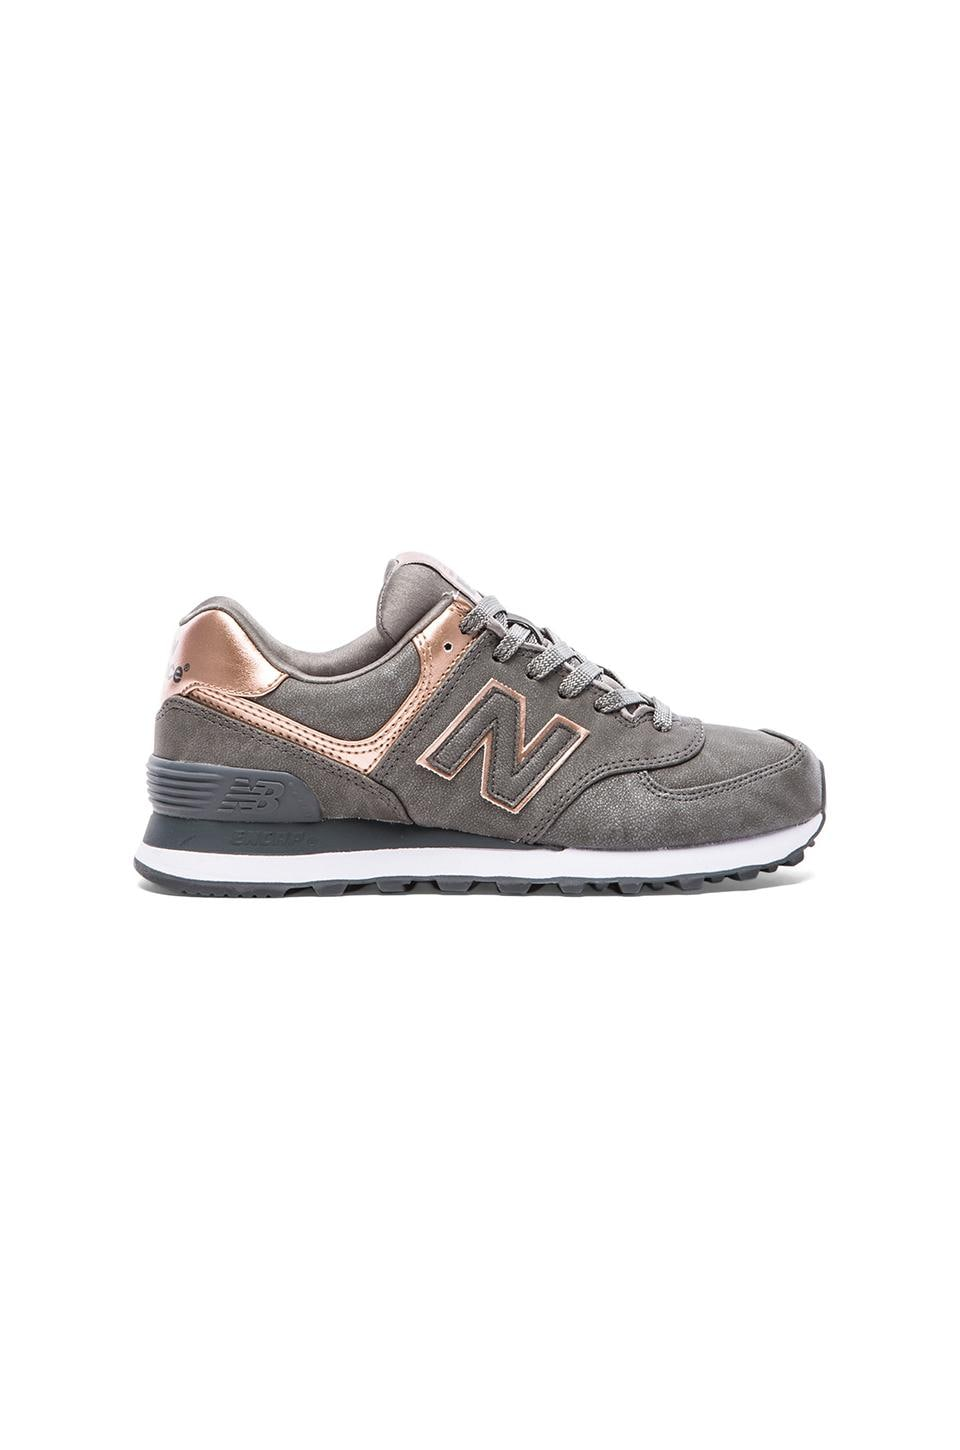 New Balance 574 Precious Metals Collection Sneaker en Argent